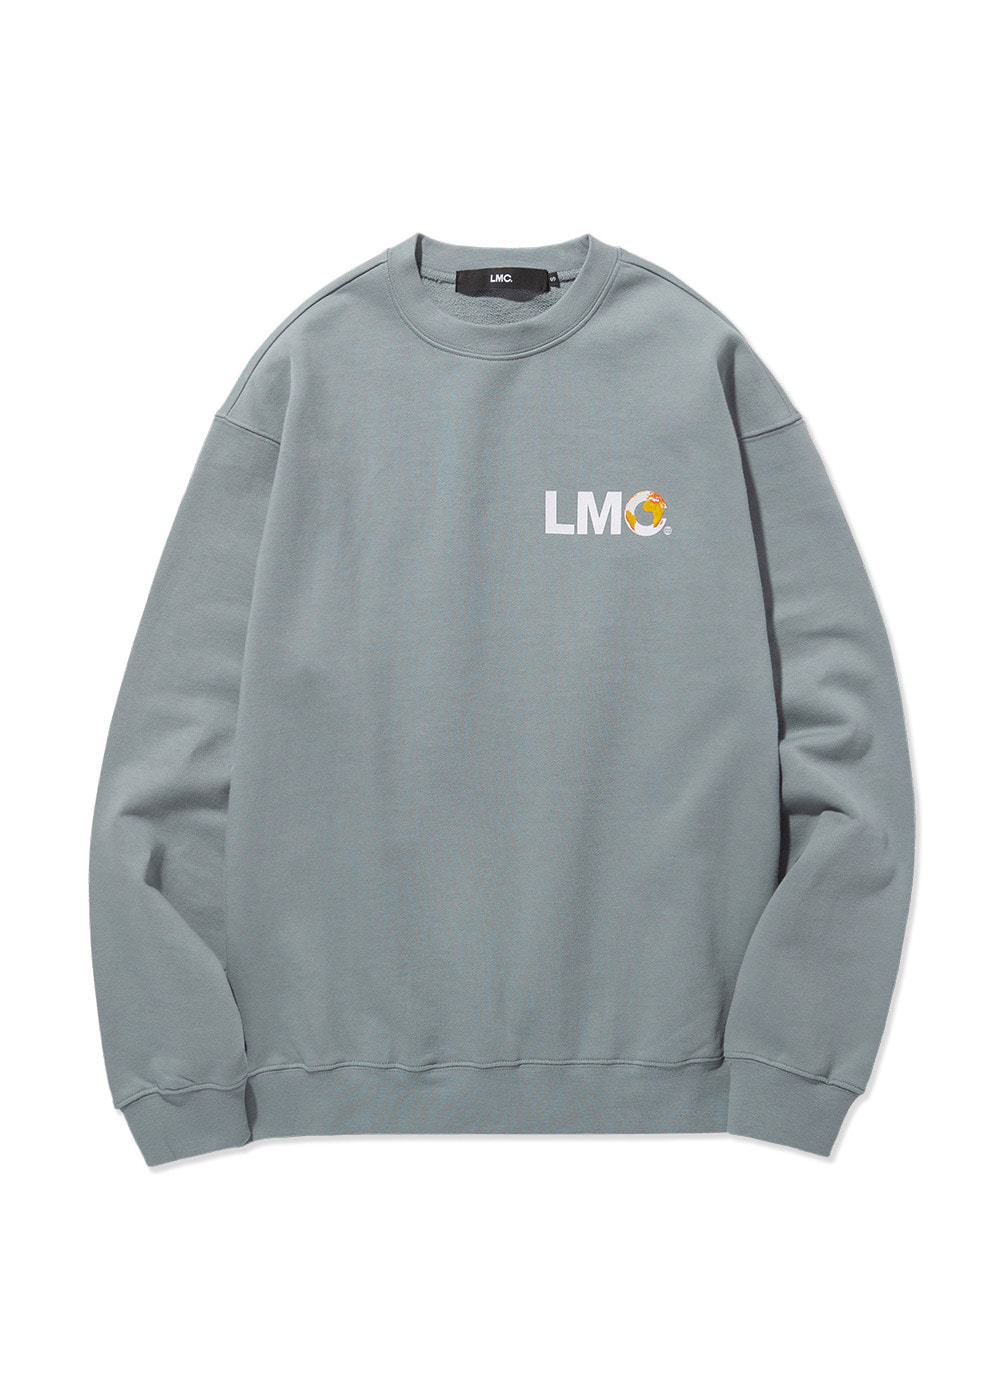 LMC FRONT EARTH SWEATSHIRT lt. olive